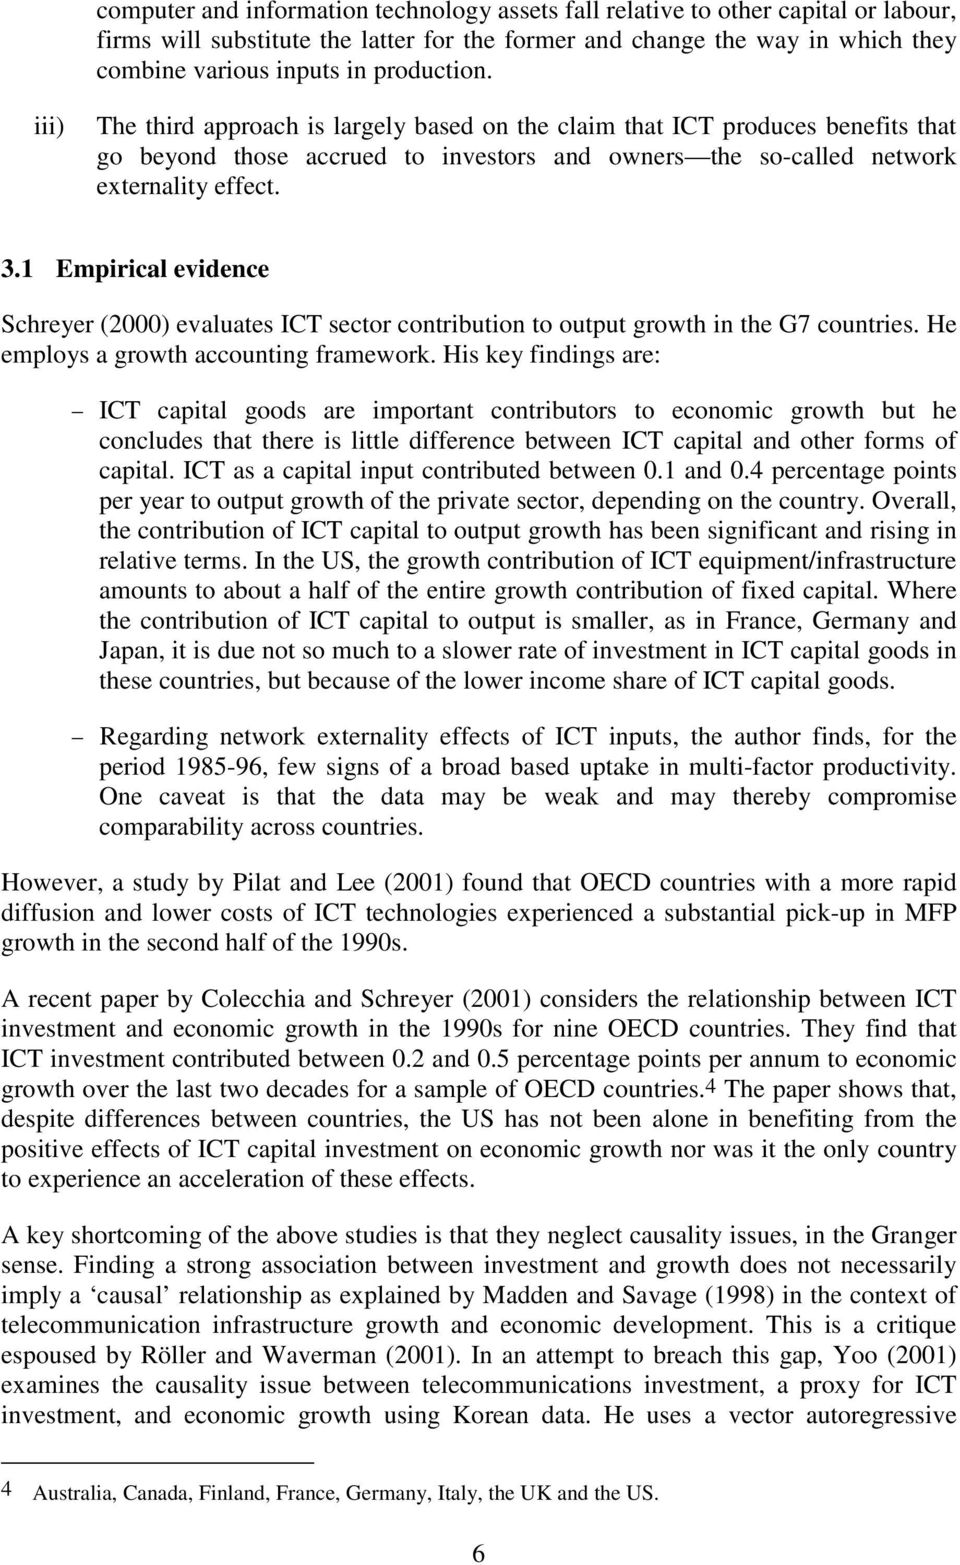 1 Empirical evidence Schreyer (2000) evaluates ICT sector contribution to output growth in the G7 countries. He employs a growth accounting framework.